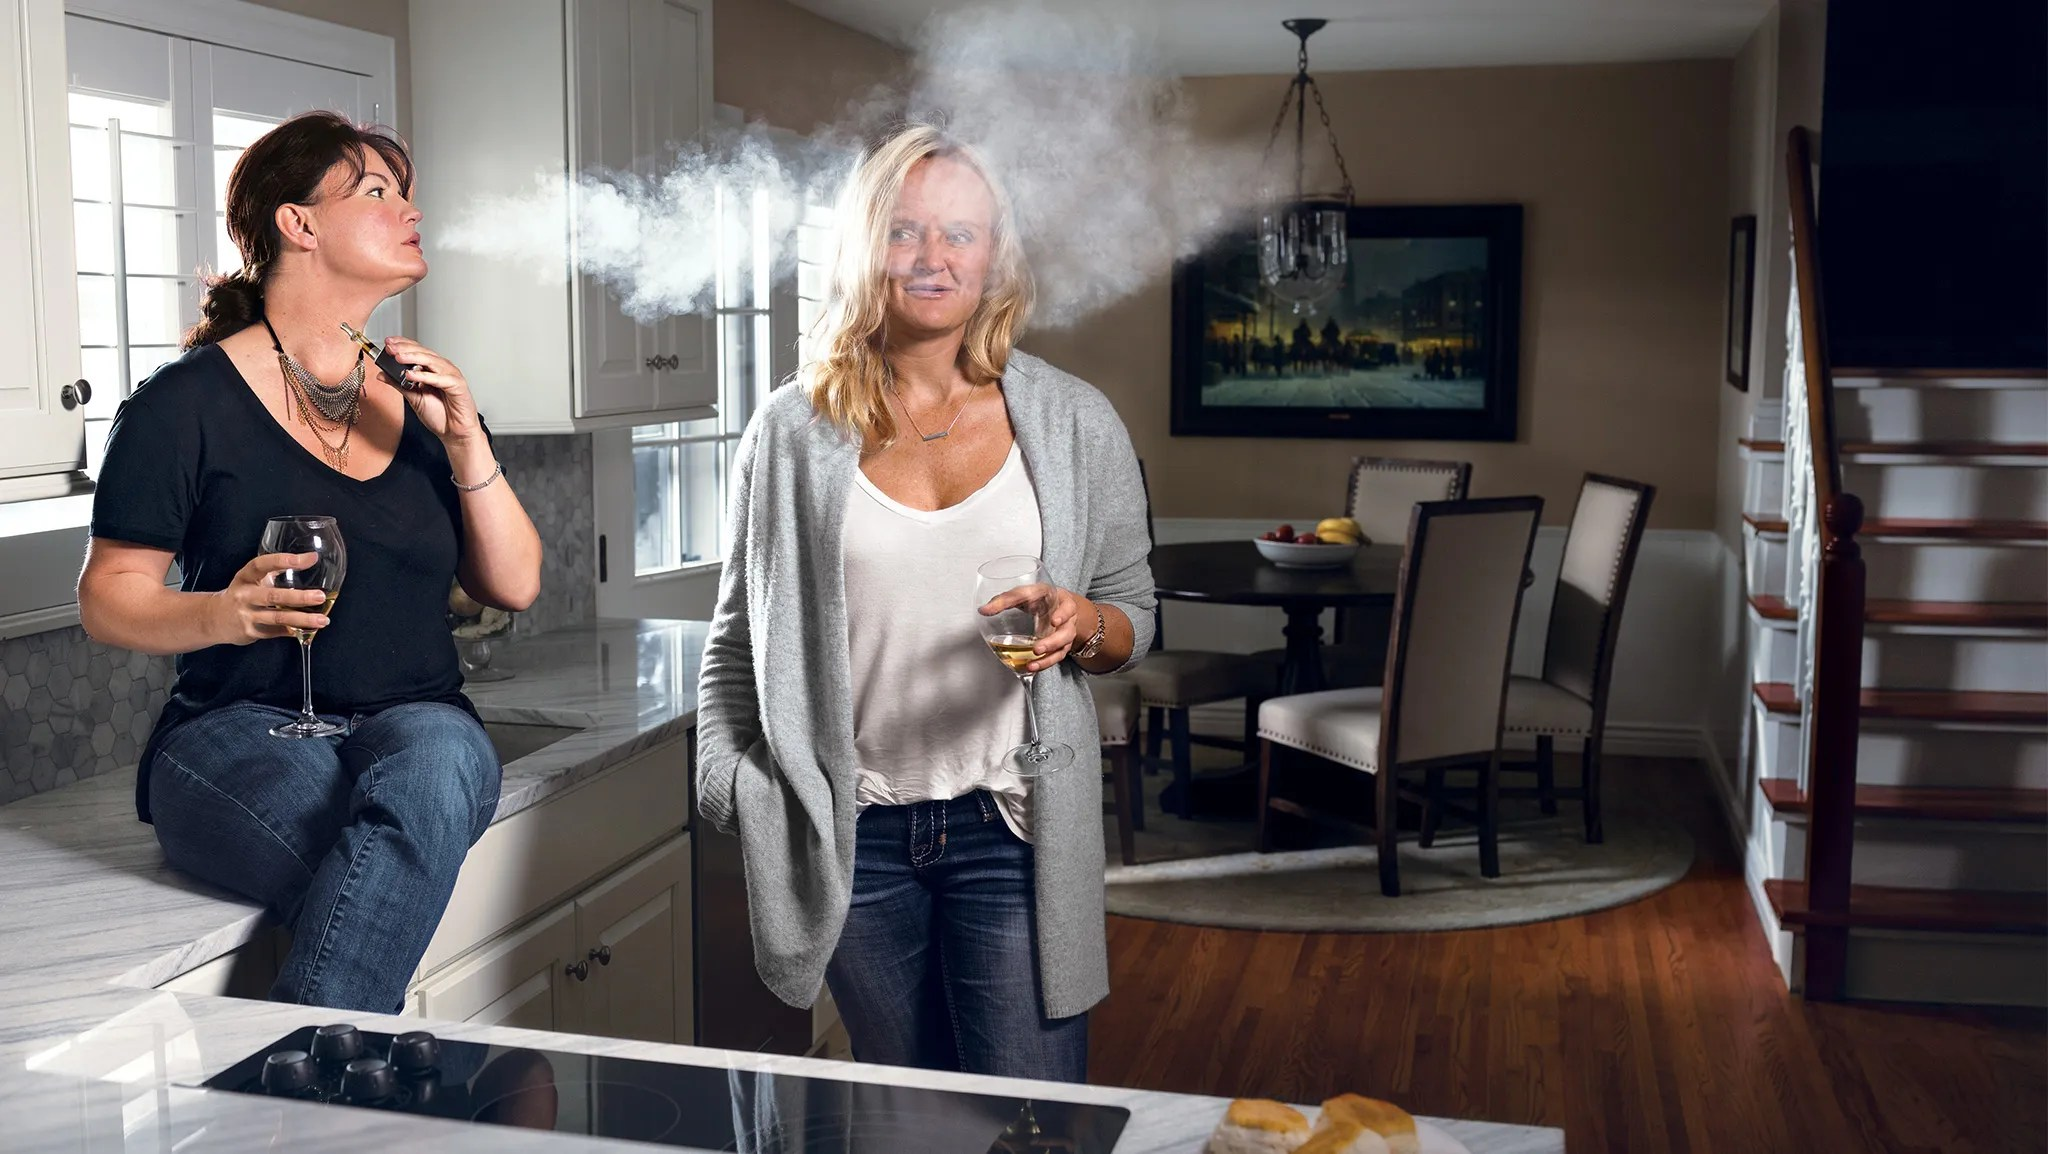 Image result for Suburban wife smoking weed